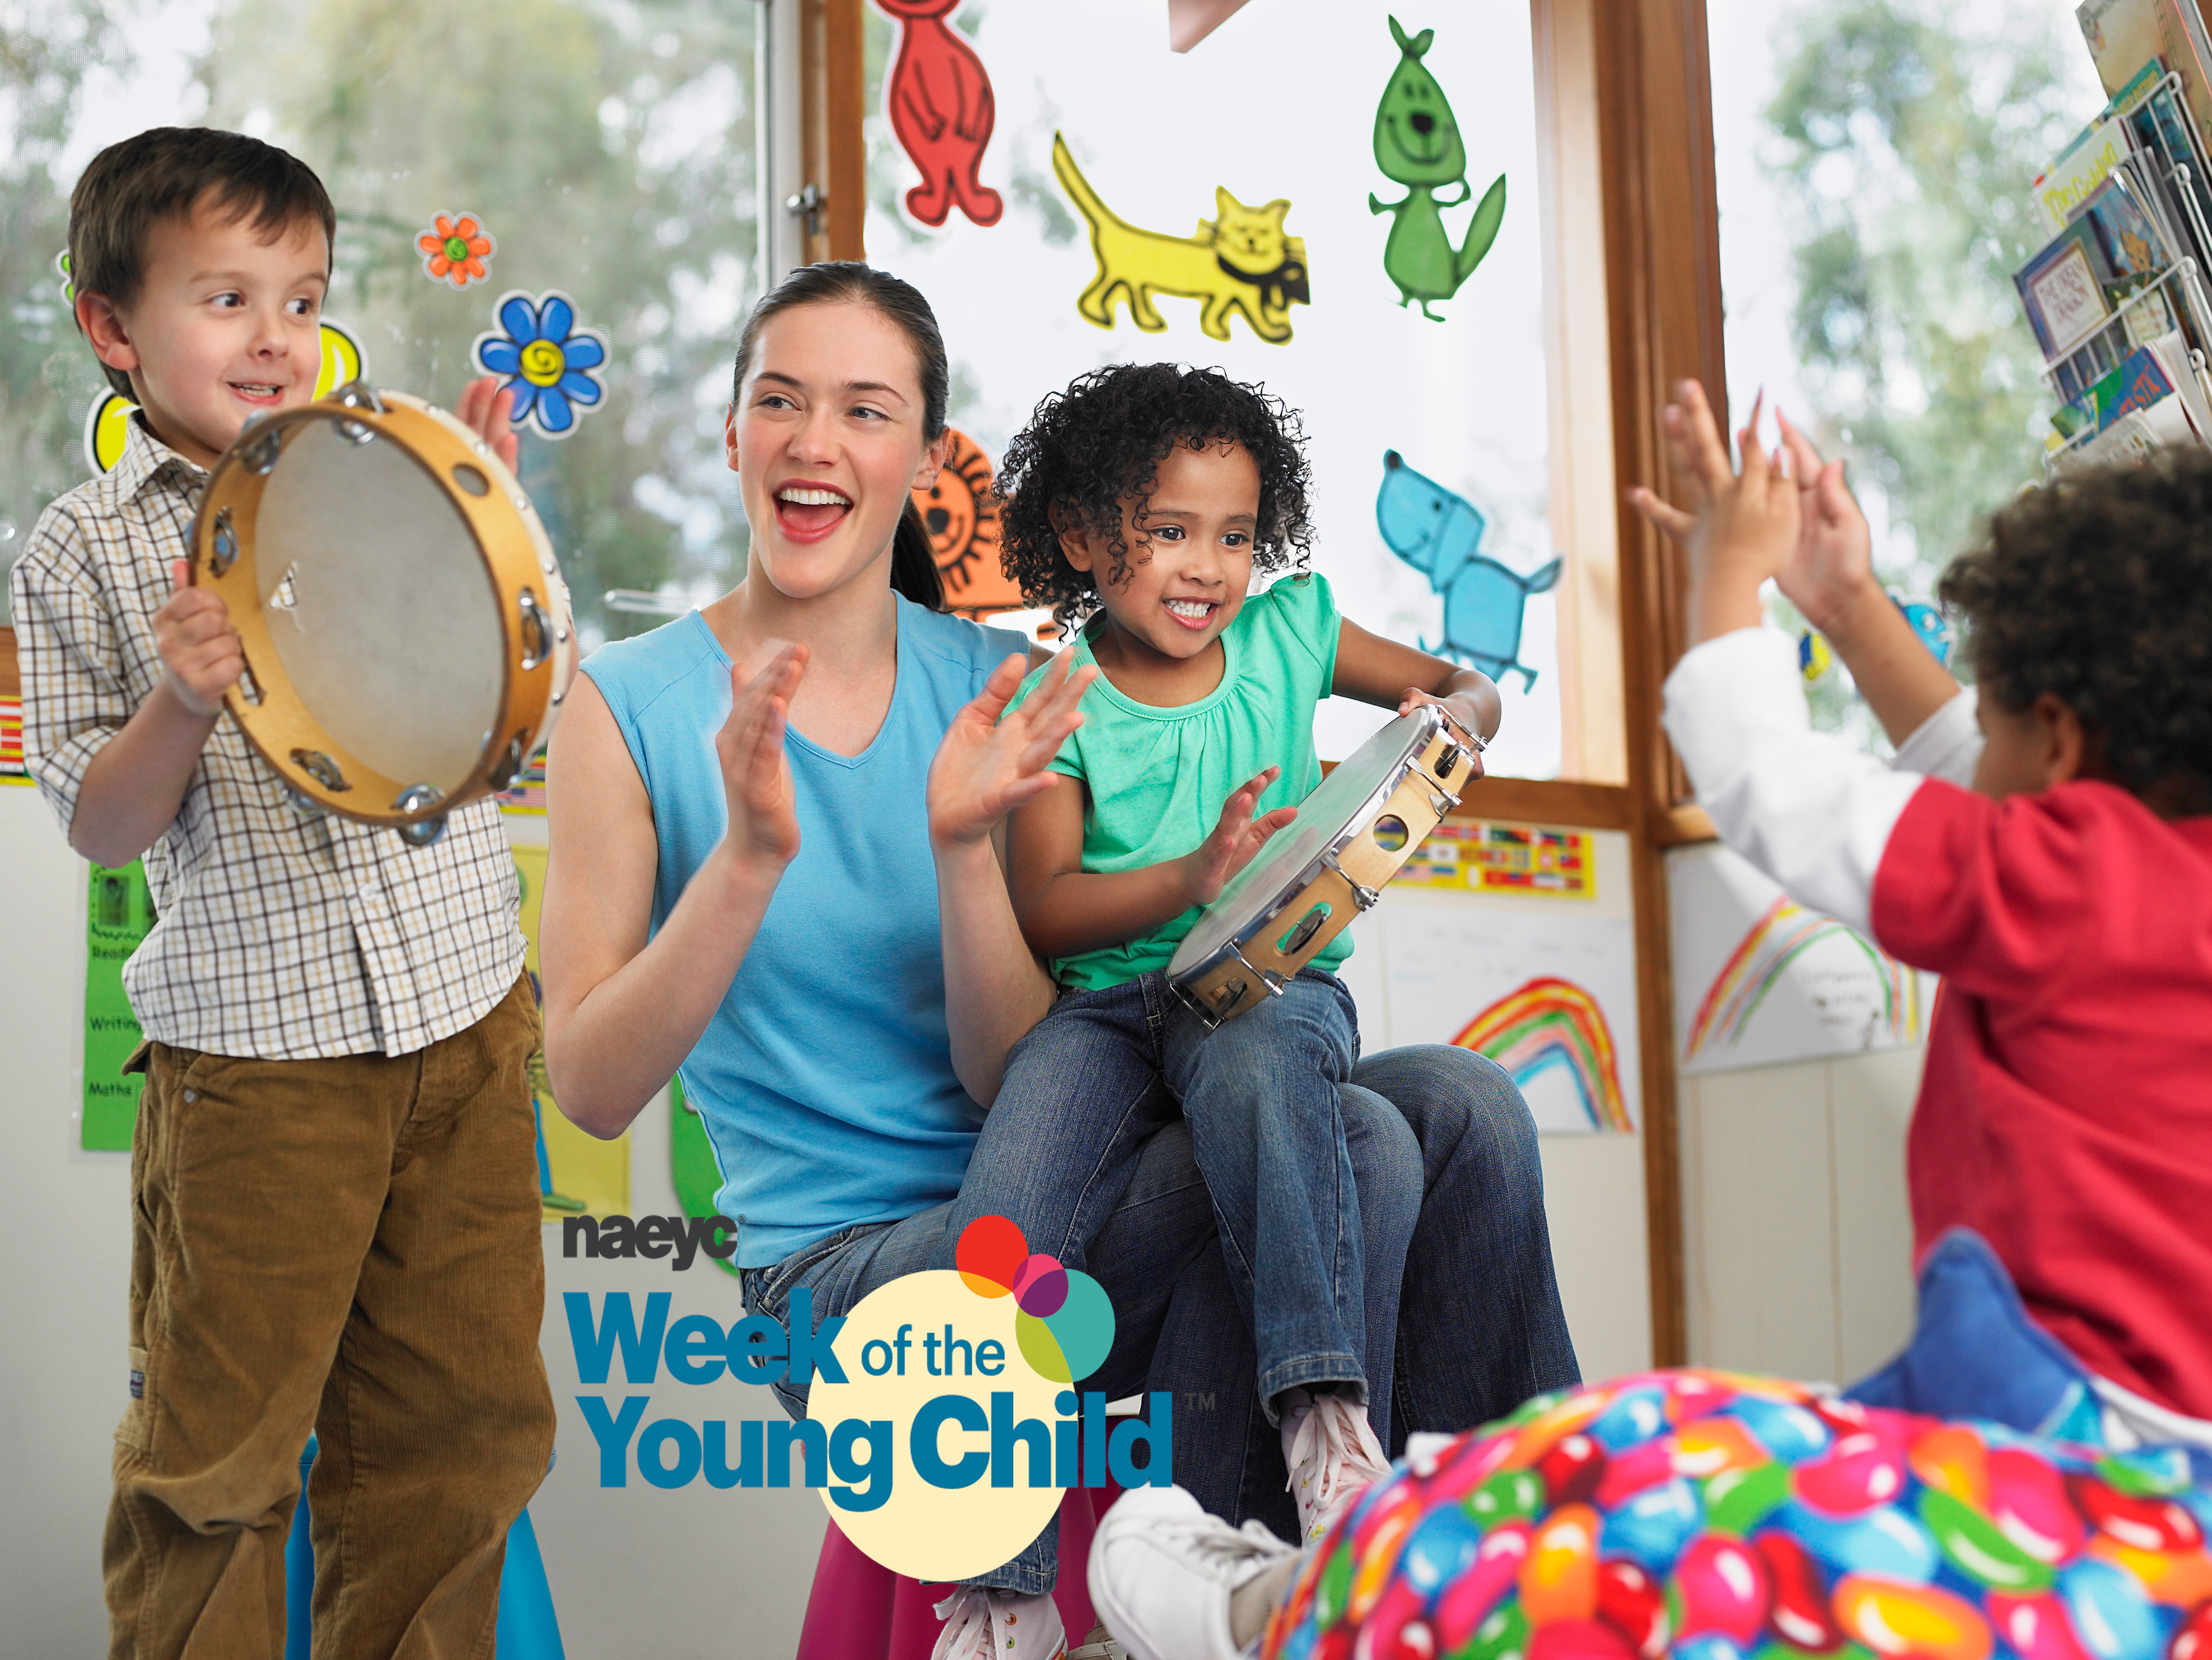 Our Hats Off to All Who Work with Young Children